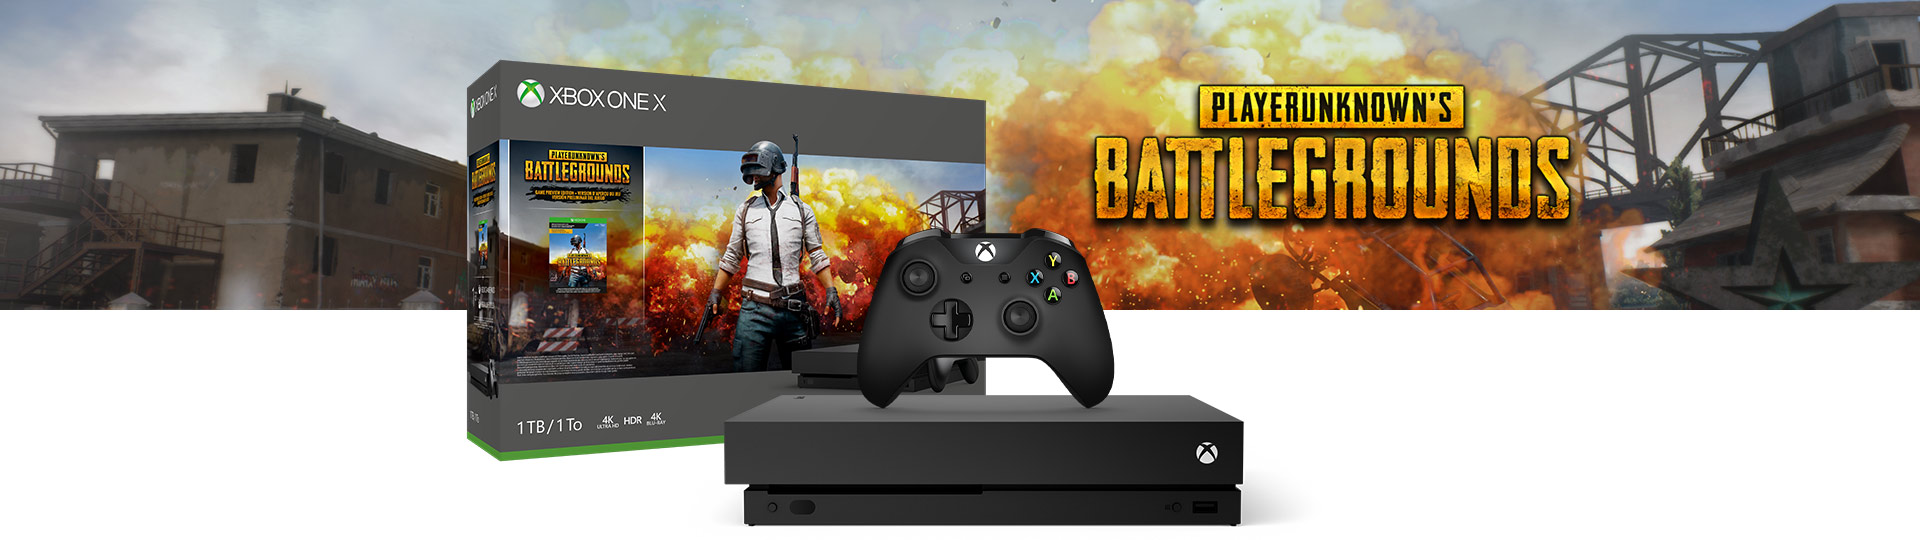 Xbox One X PLAYERUNKNOWN'S BATTLEGROUNDS Bundle (1TB) | Xbox